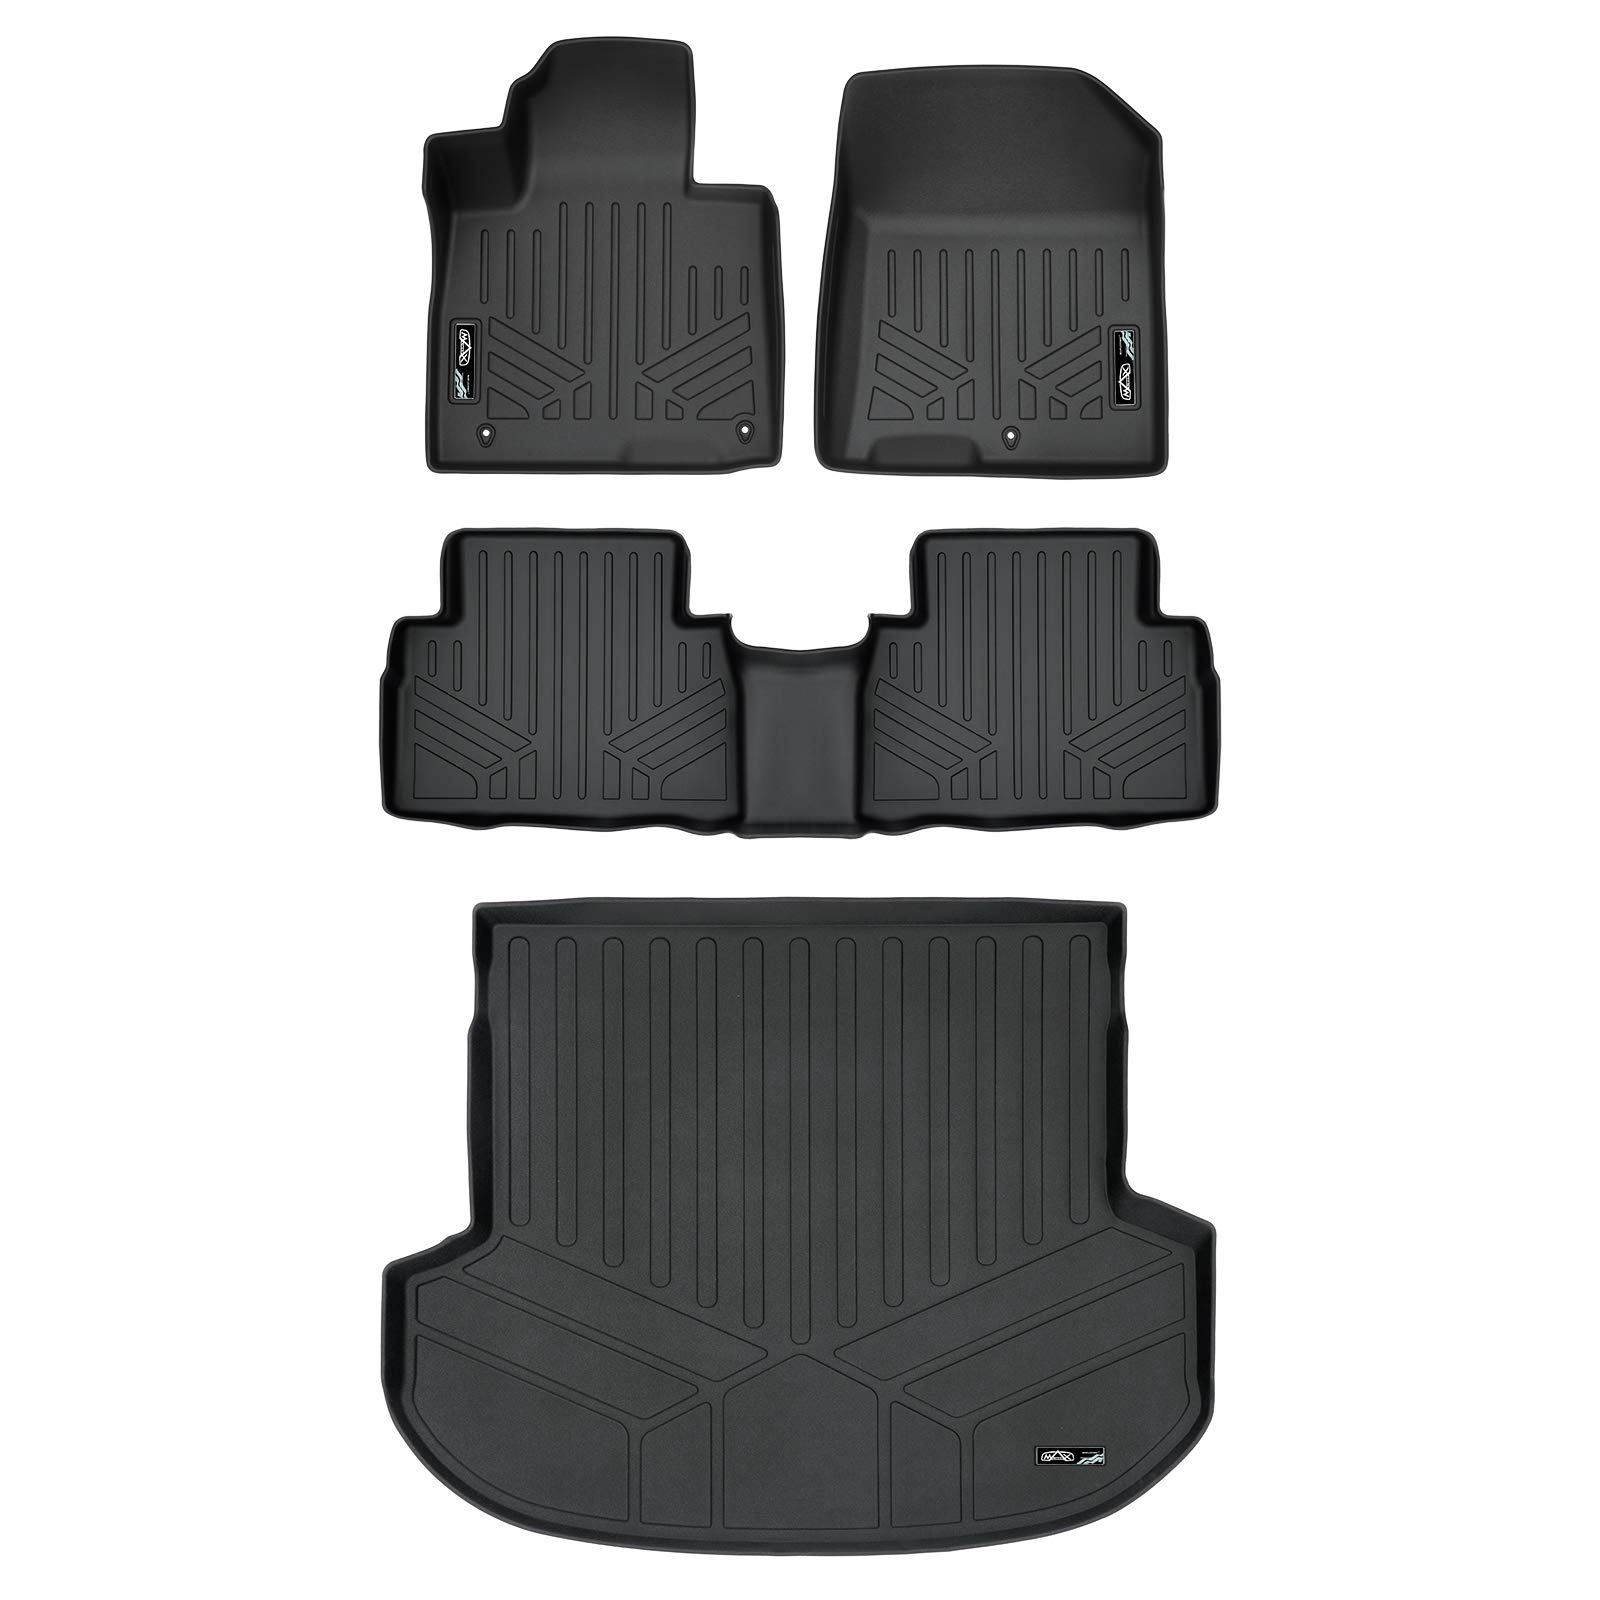 MAX LINER A0411/B0411/D0411 Custom Fit Floor Mats 2 Rows and Cargo Liner Trunk Set Black for 2019 Hyundai Santa Fe 5 Passenger Models